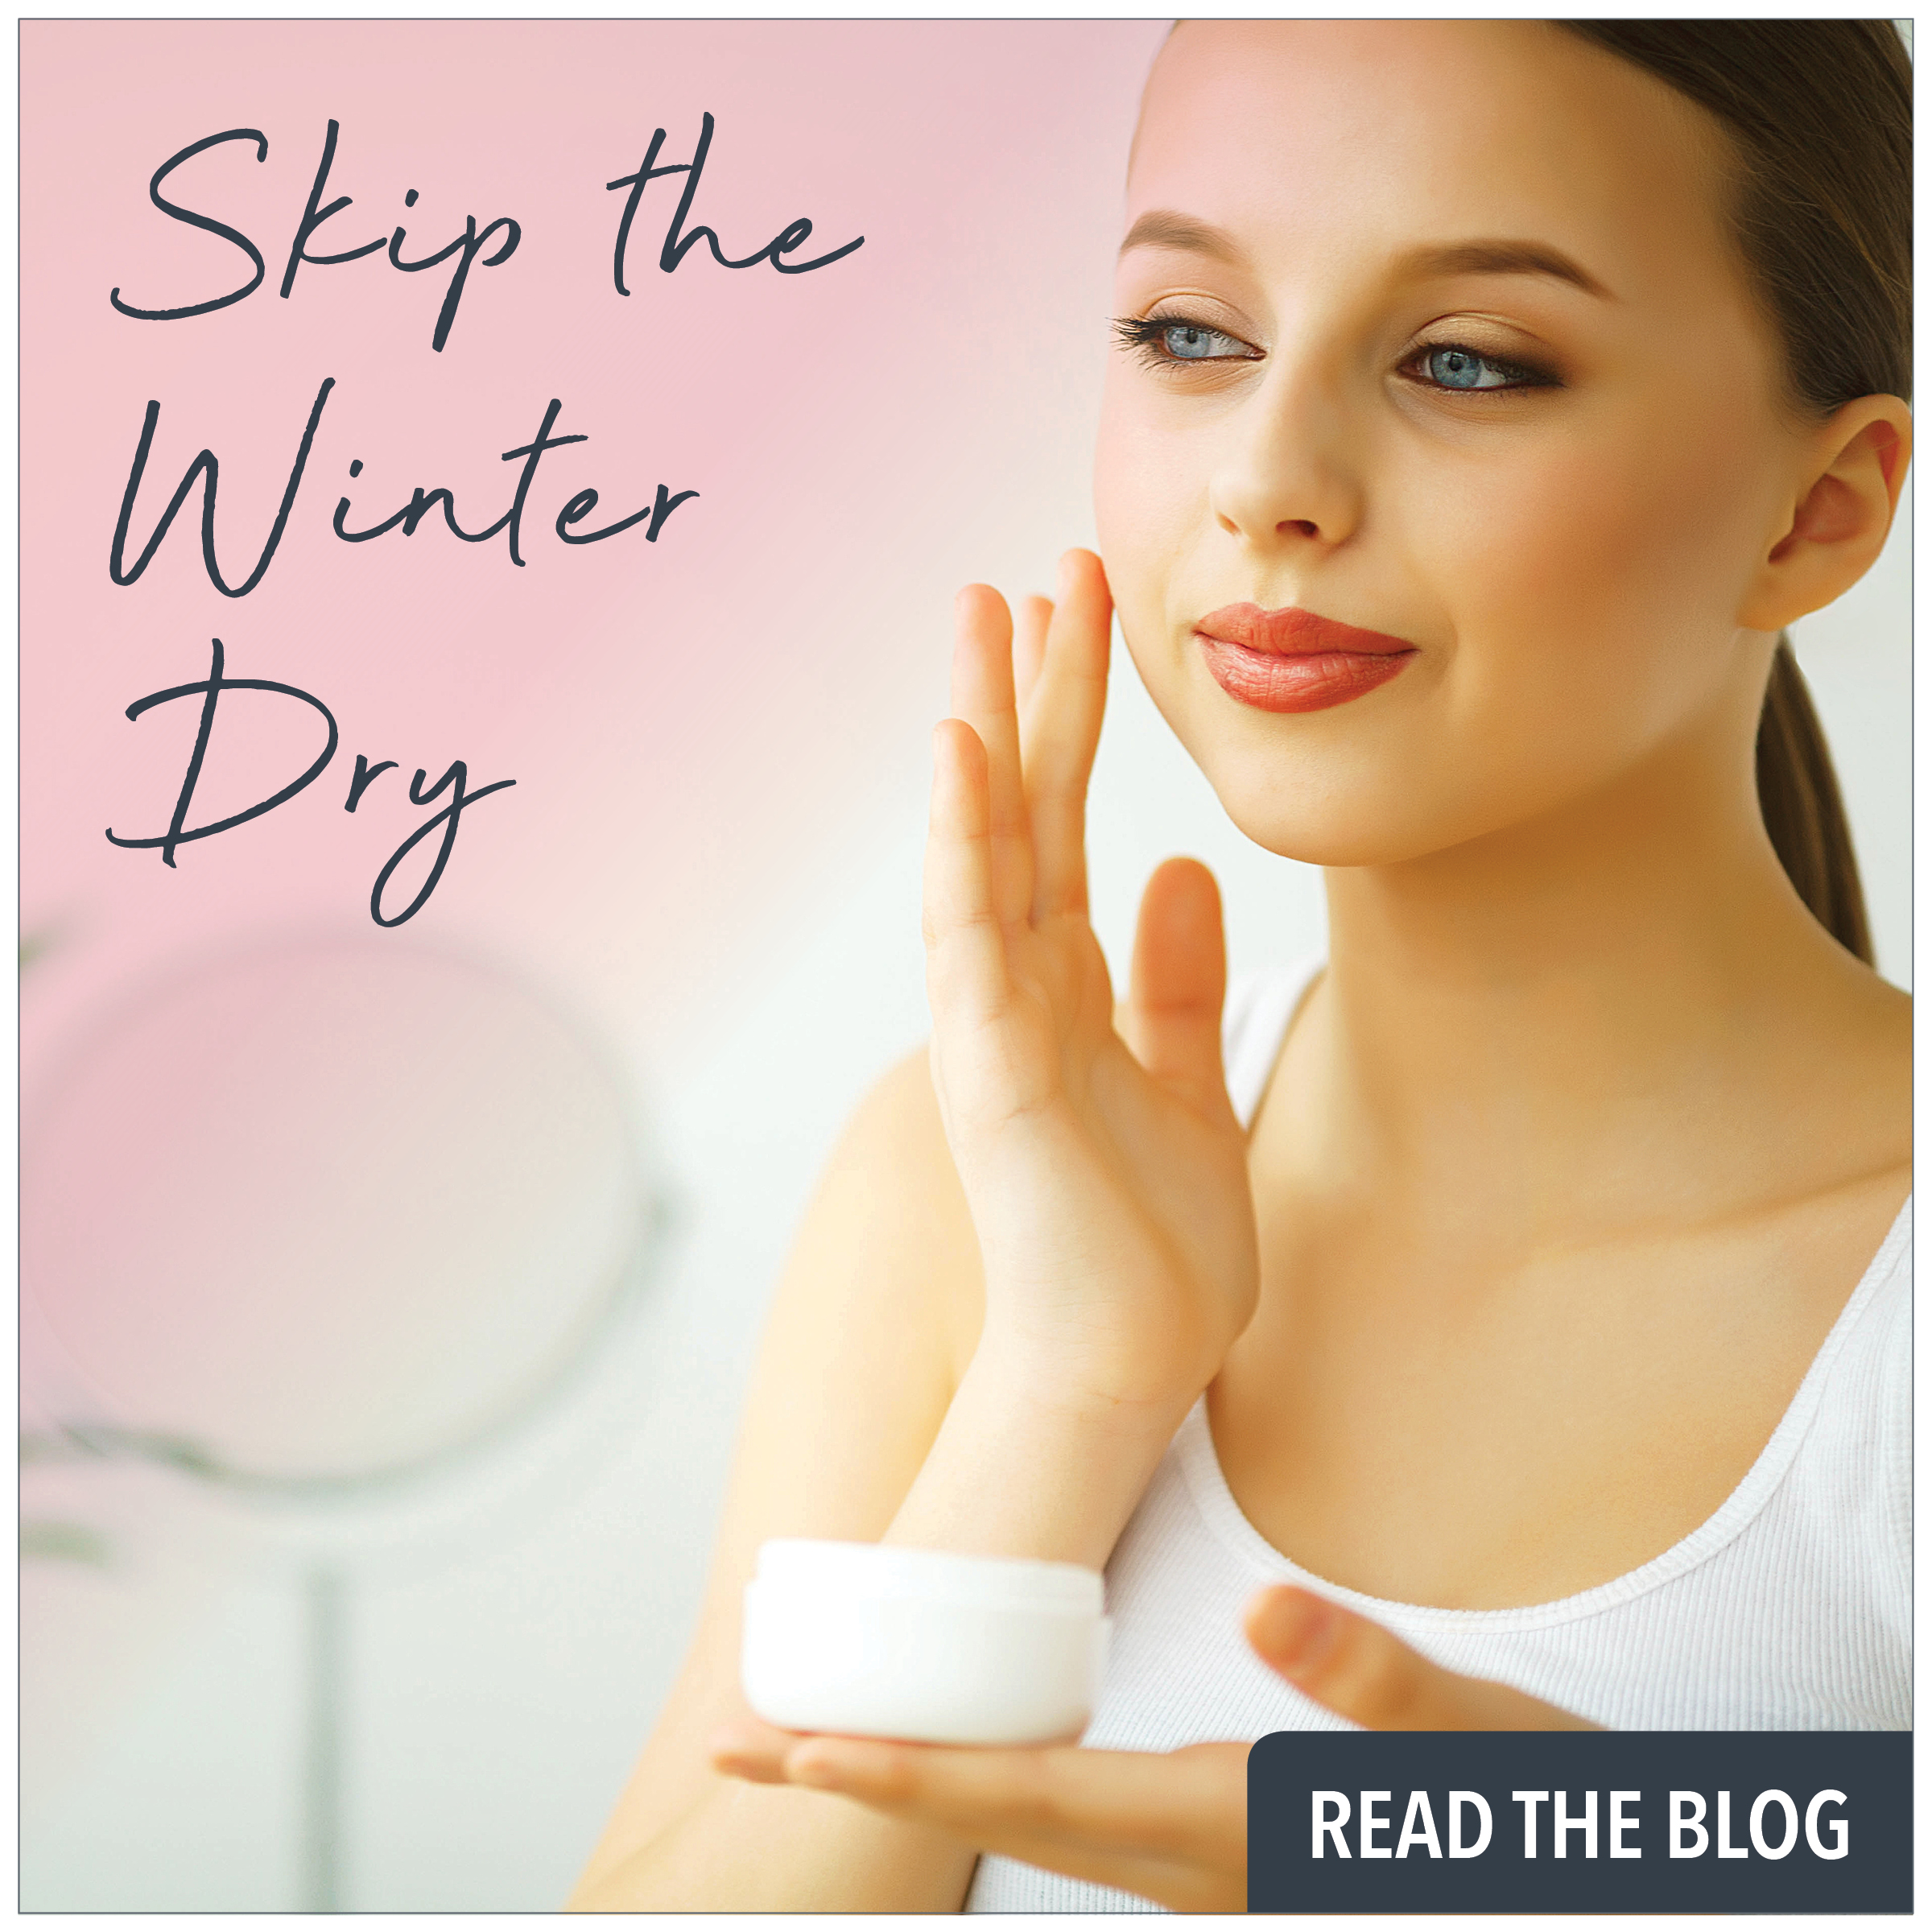 skip the winter dry with prodermal